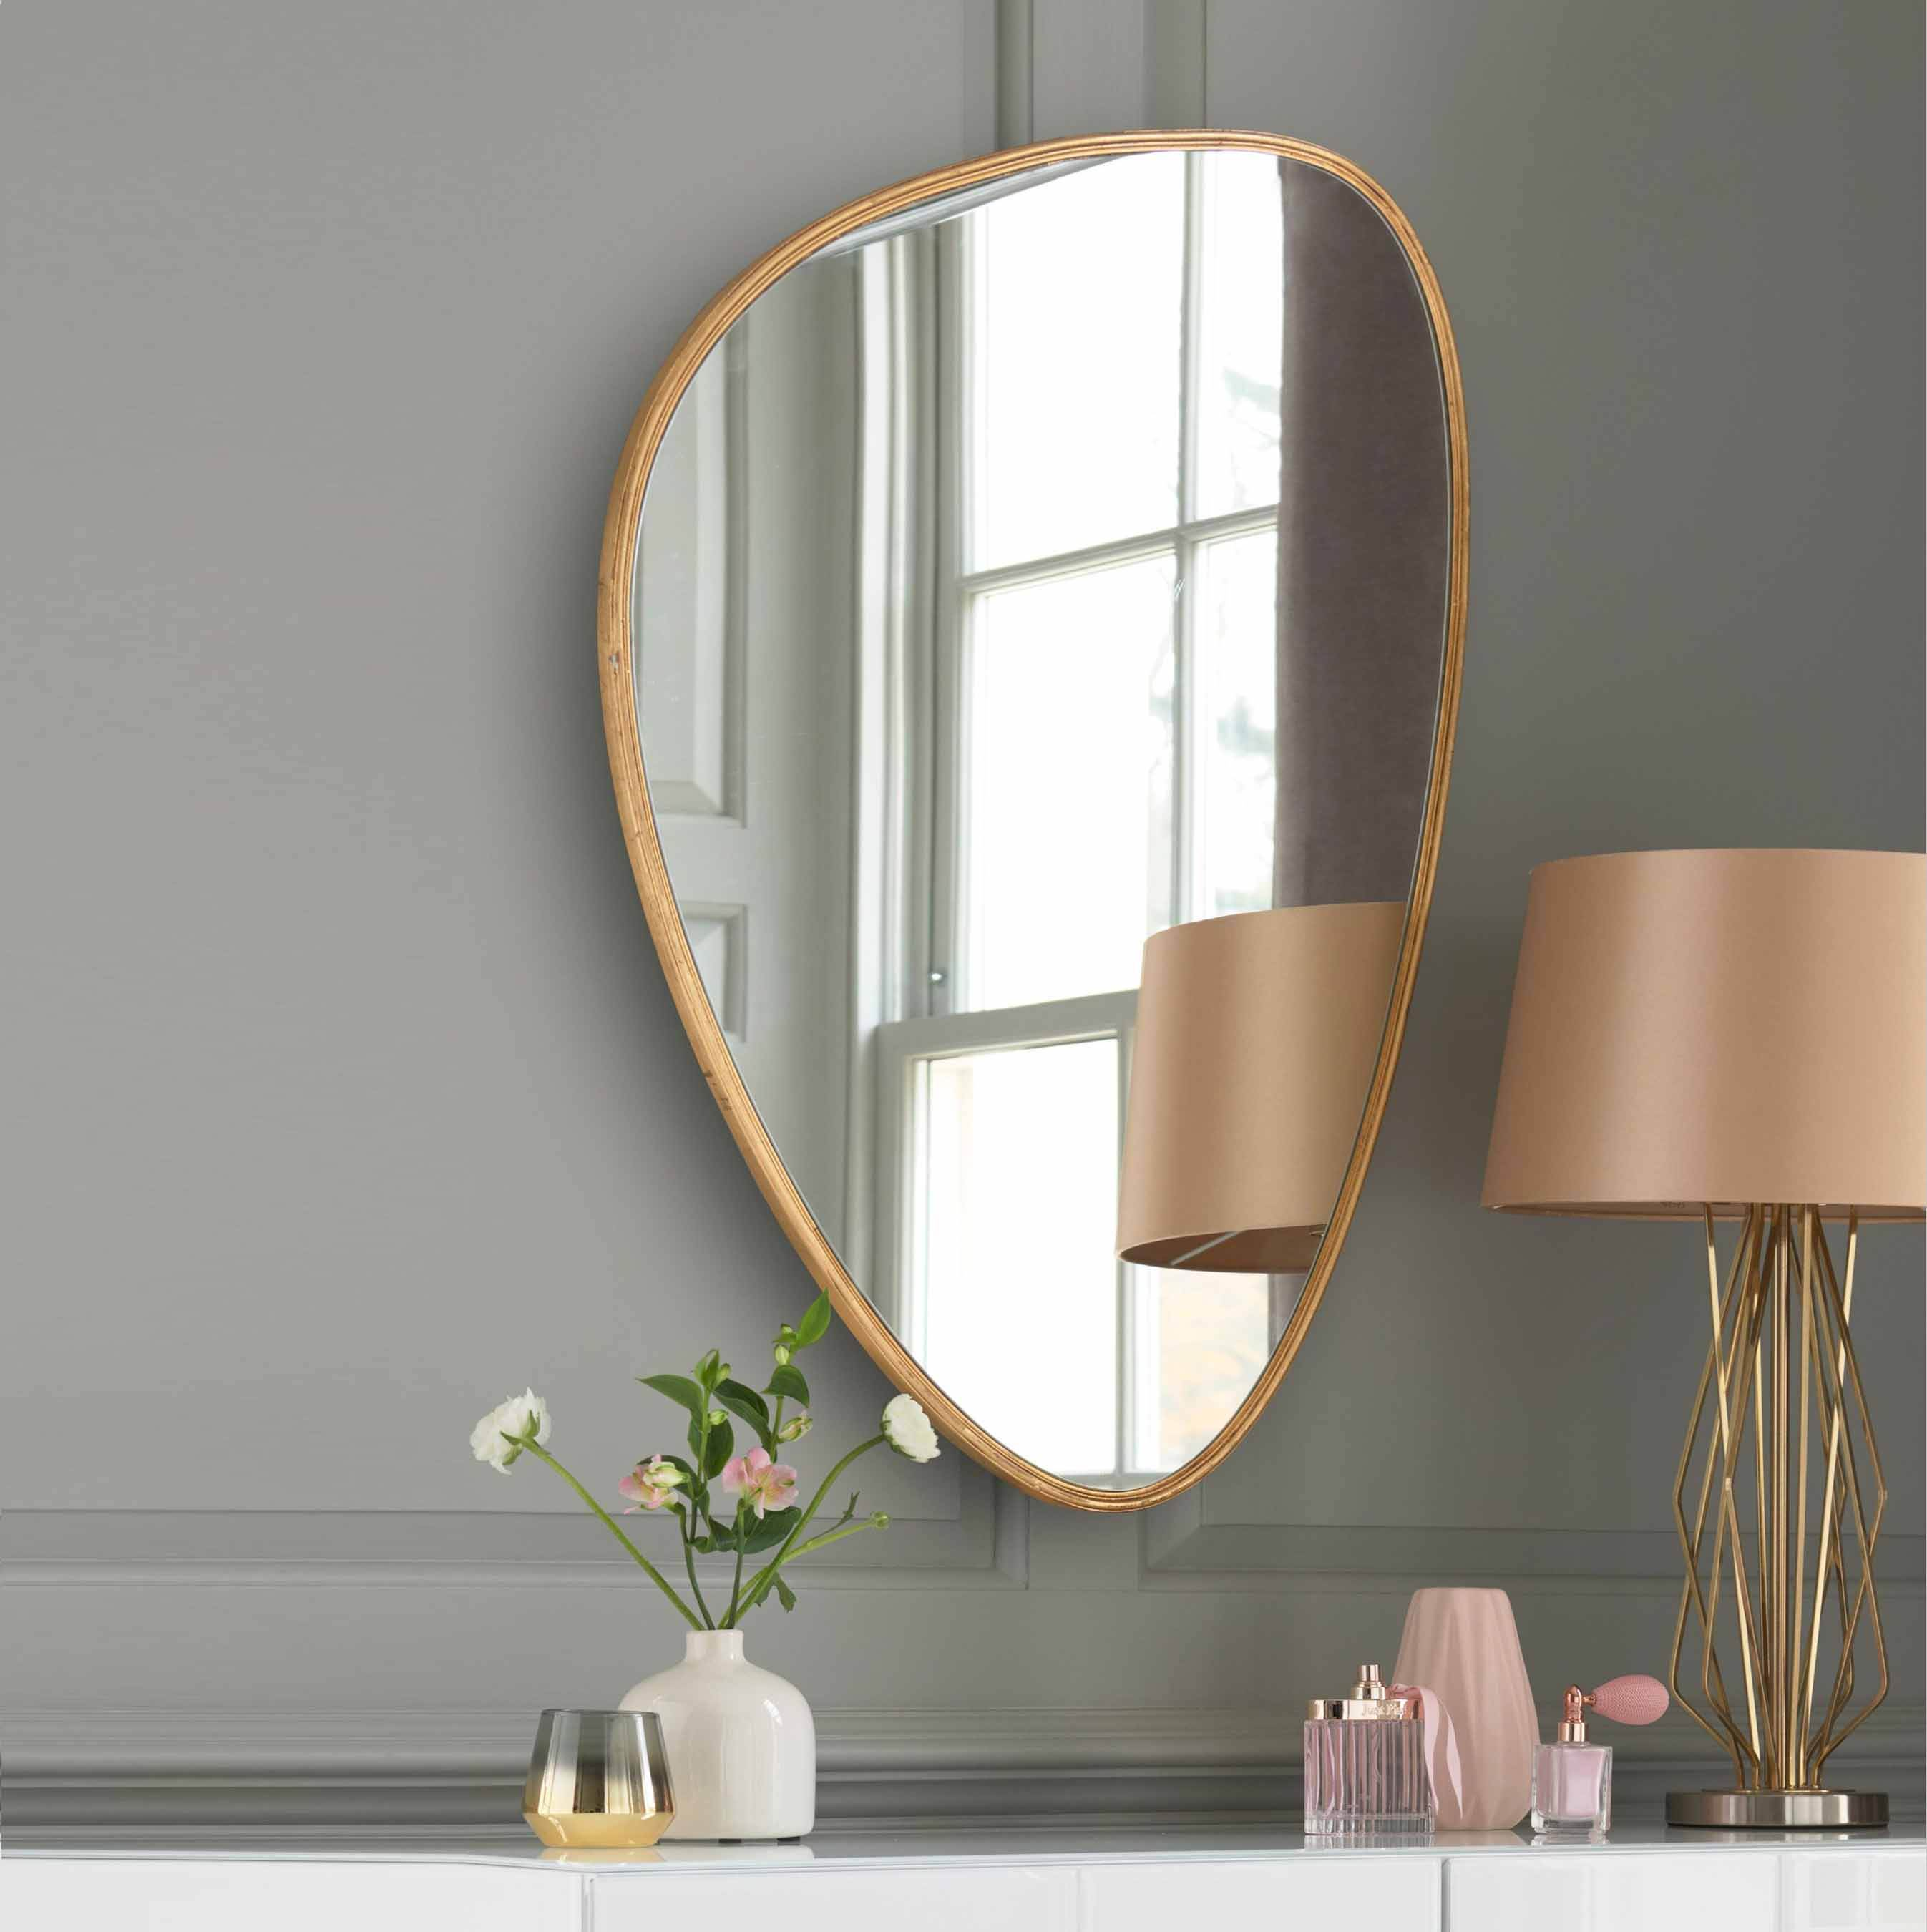 SWT modern stylish Home Decor Gold Round design decorative metal frame wall mirror for living room hotel decor